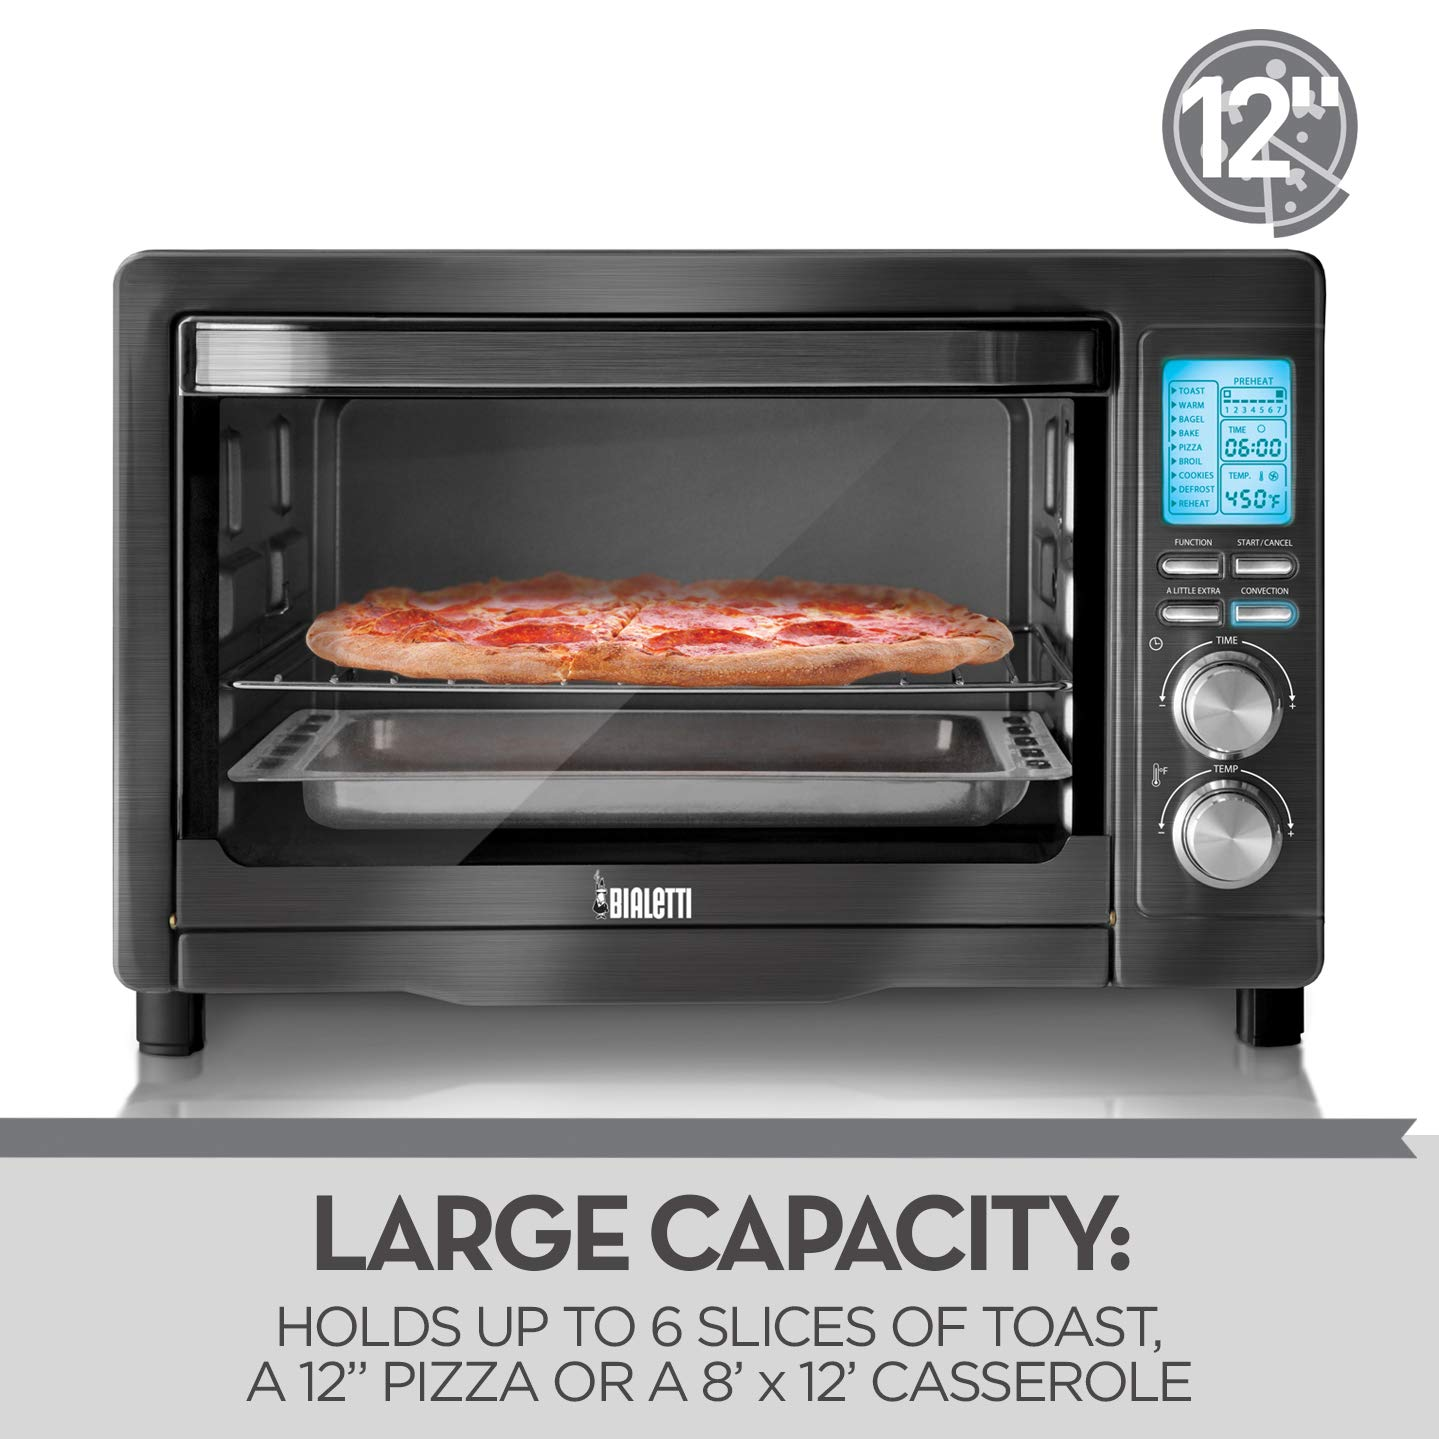 Bialetti (35047) 6-Slice Convection Toaster Oven, Black Stainless Steel by Bialetti (Image #7)